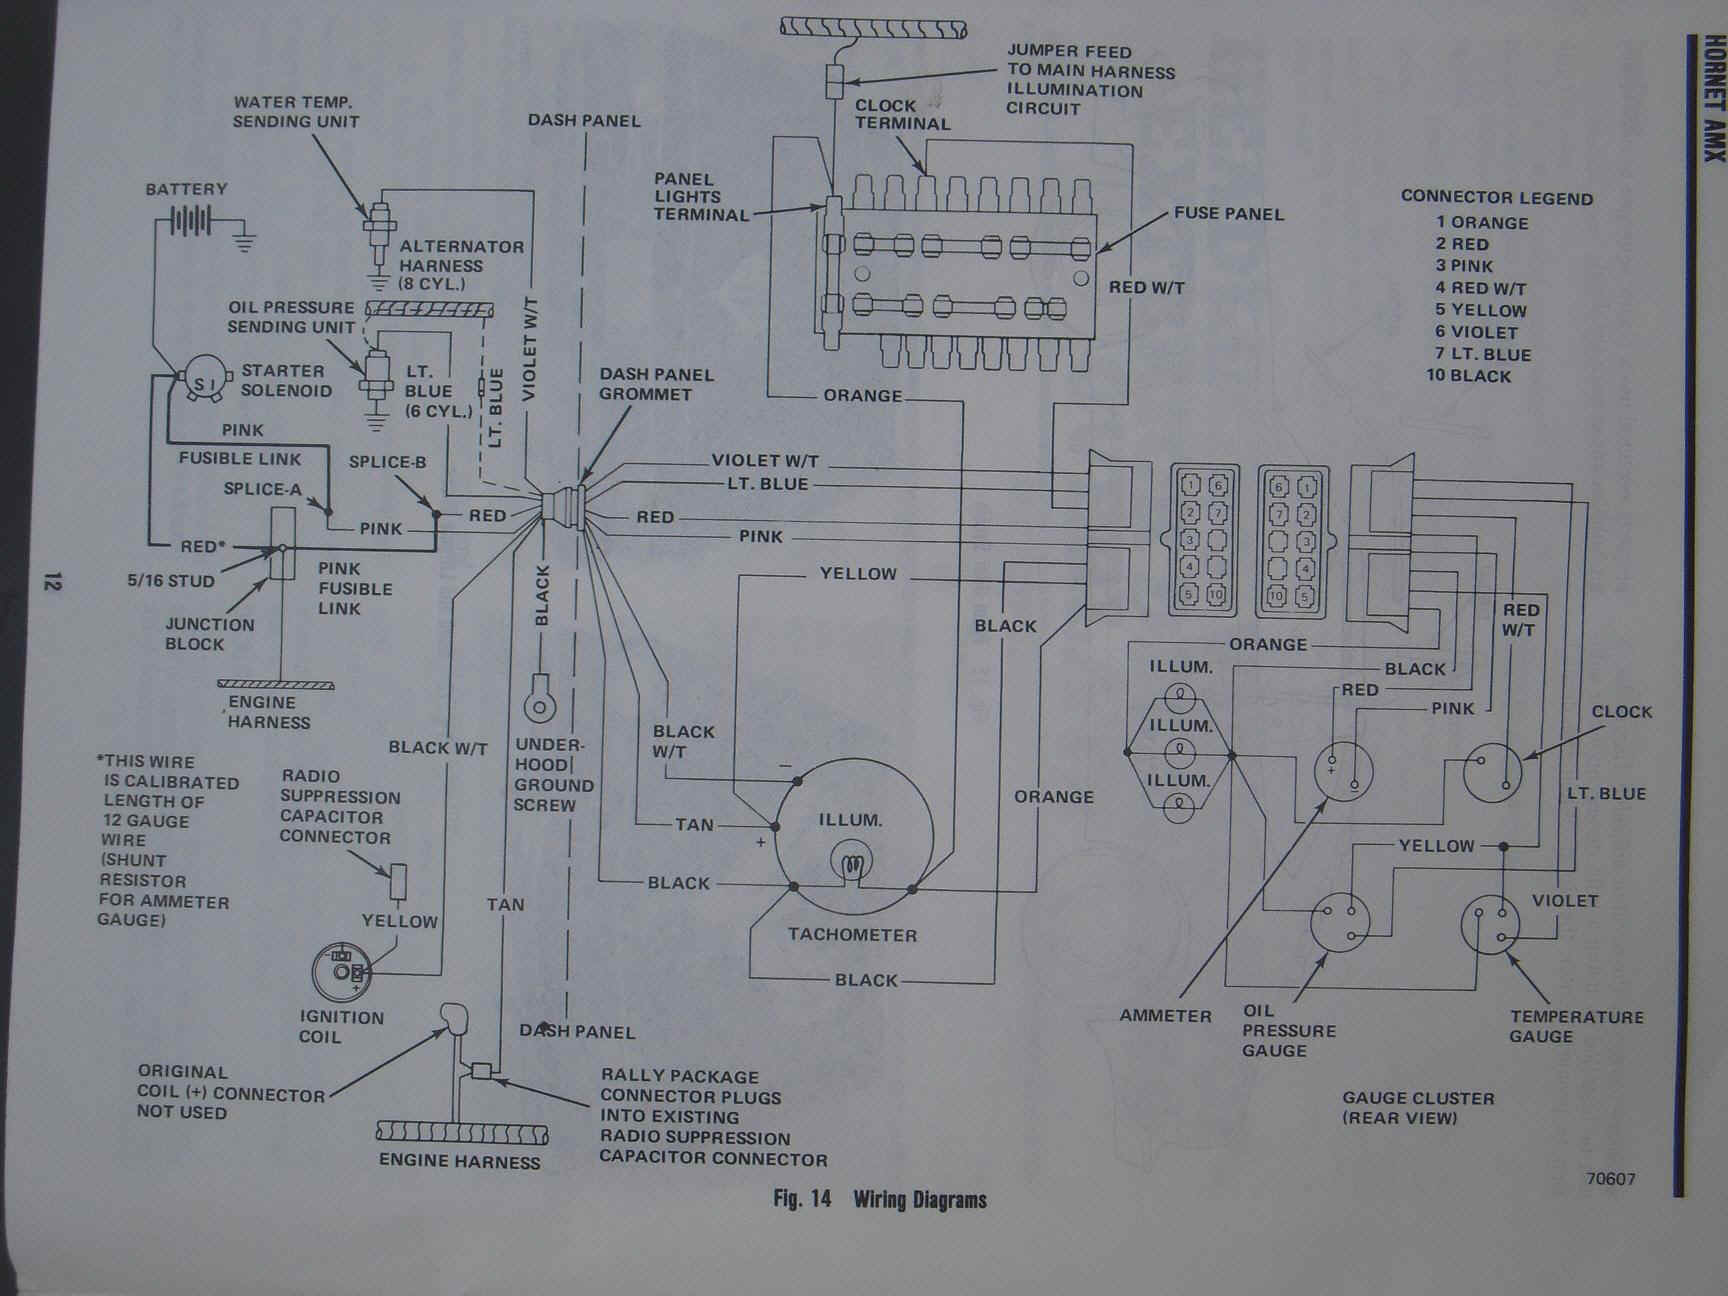 amc wiring harness diagram wiring library harness routing under hood for 1973 amc v 8 javelin [ 1728 x 1296 Pixel ]